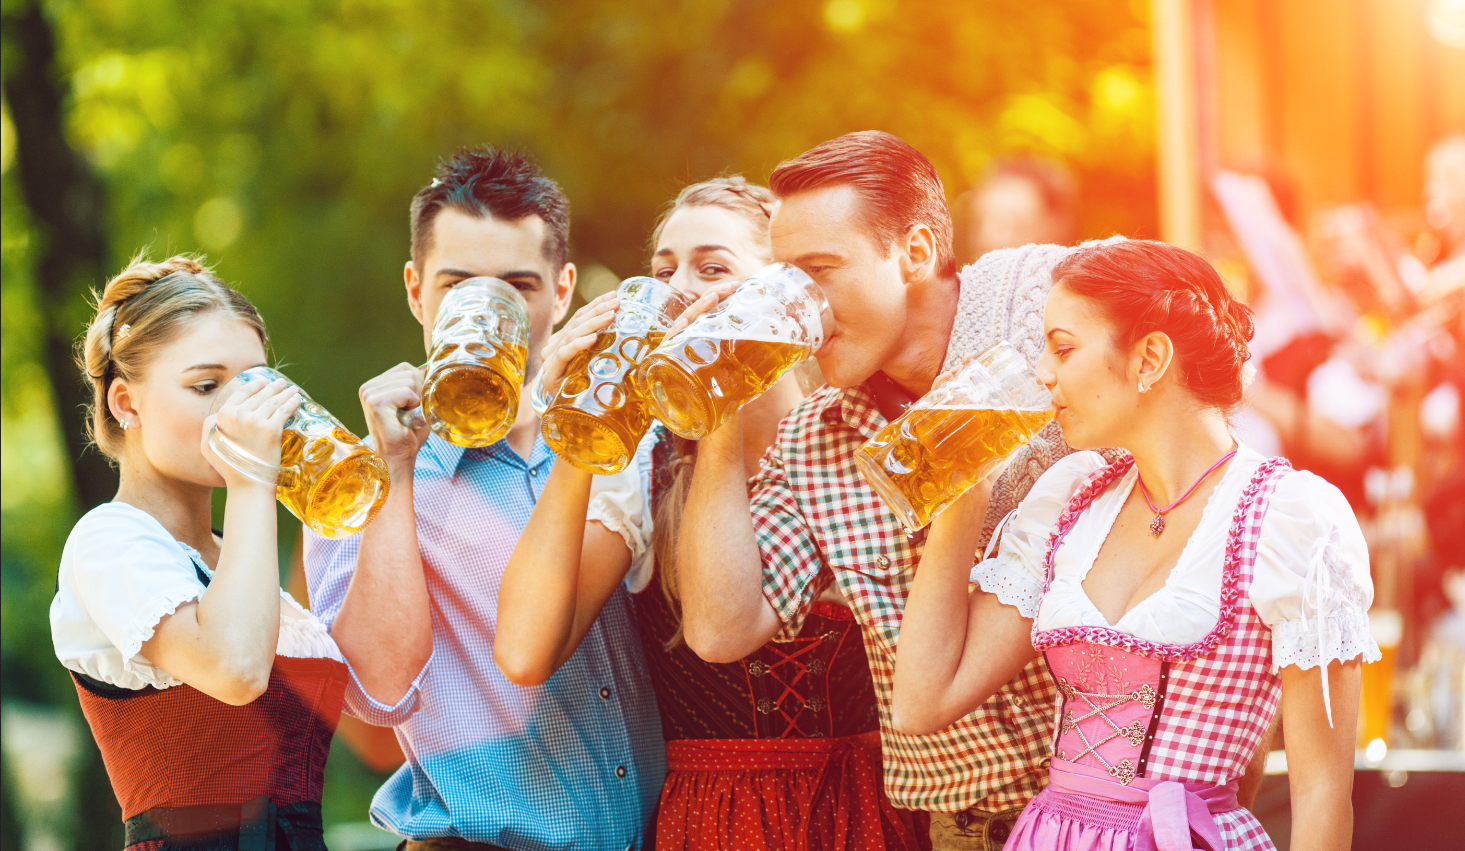 Once the rules and precautions are in place, it's time to focus on what makes beer gardens a great experience—the fun!